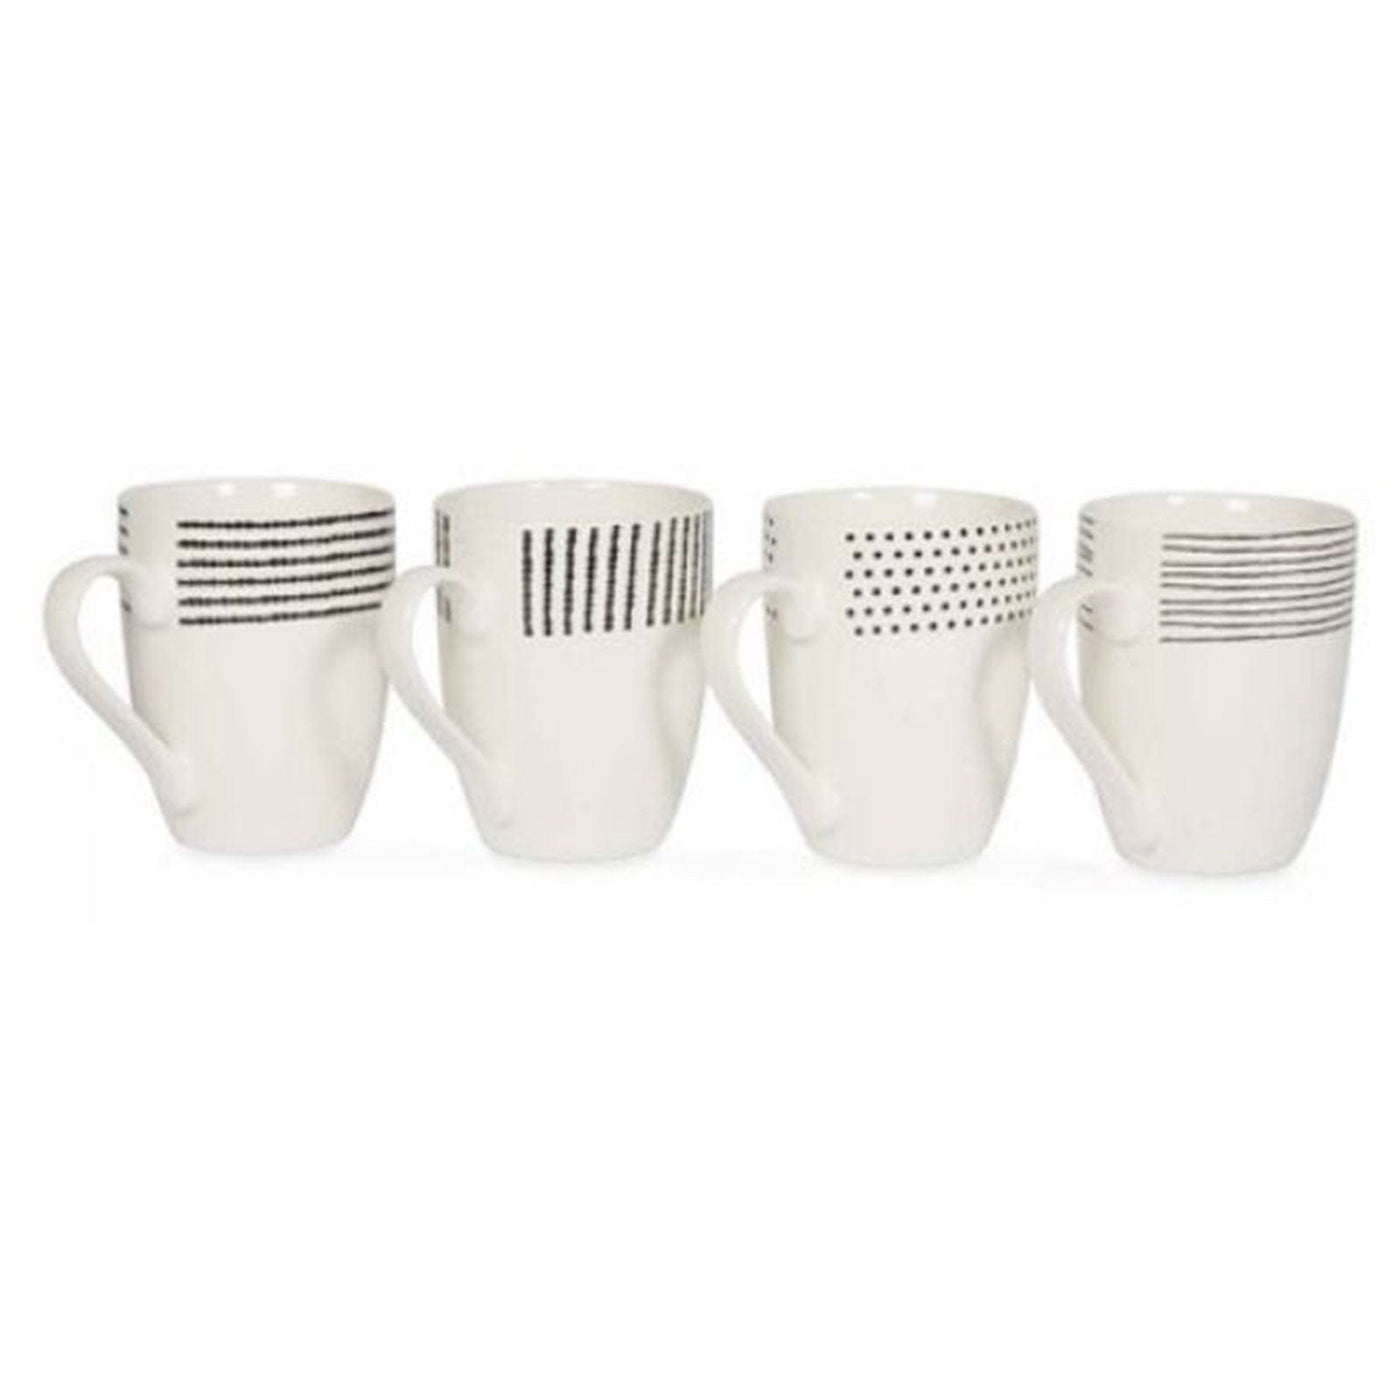 Fine Bone China Black and White Set of 4 Coffee Mugs – Hello